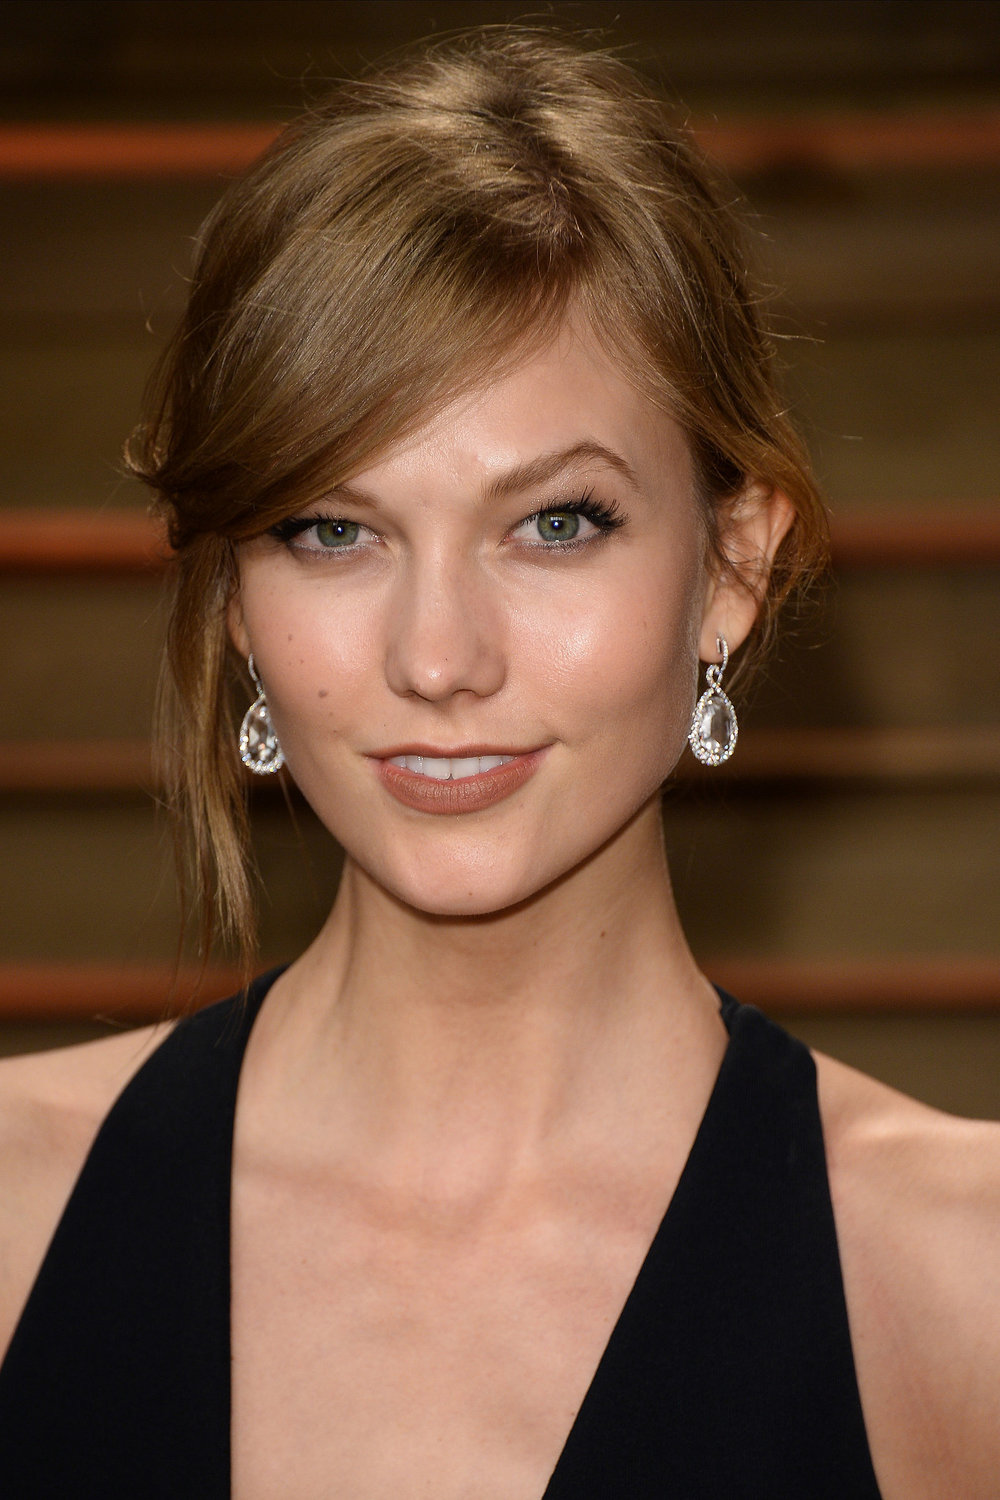 Karlie-Kloss-Vanity-Fair-Party.jpg